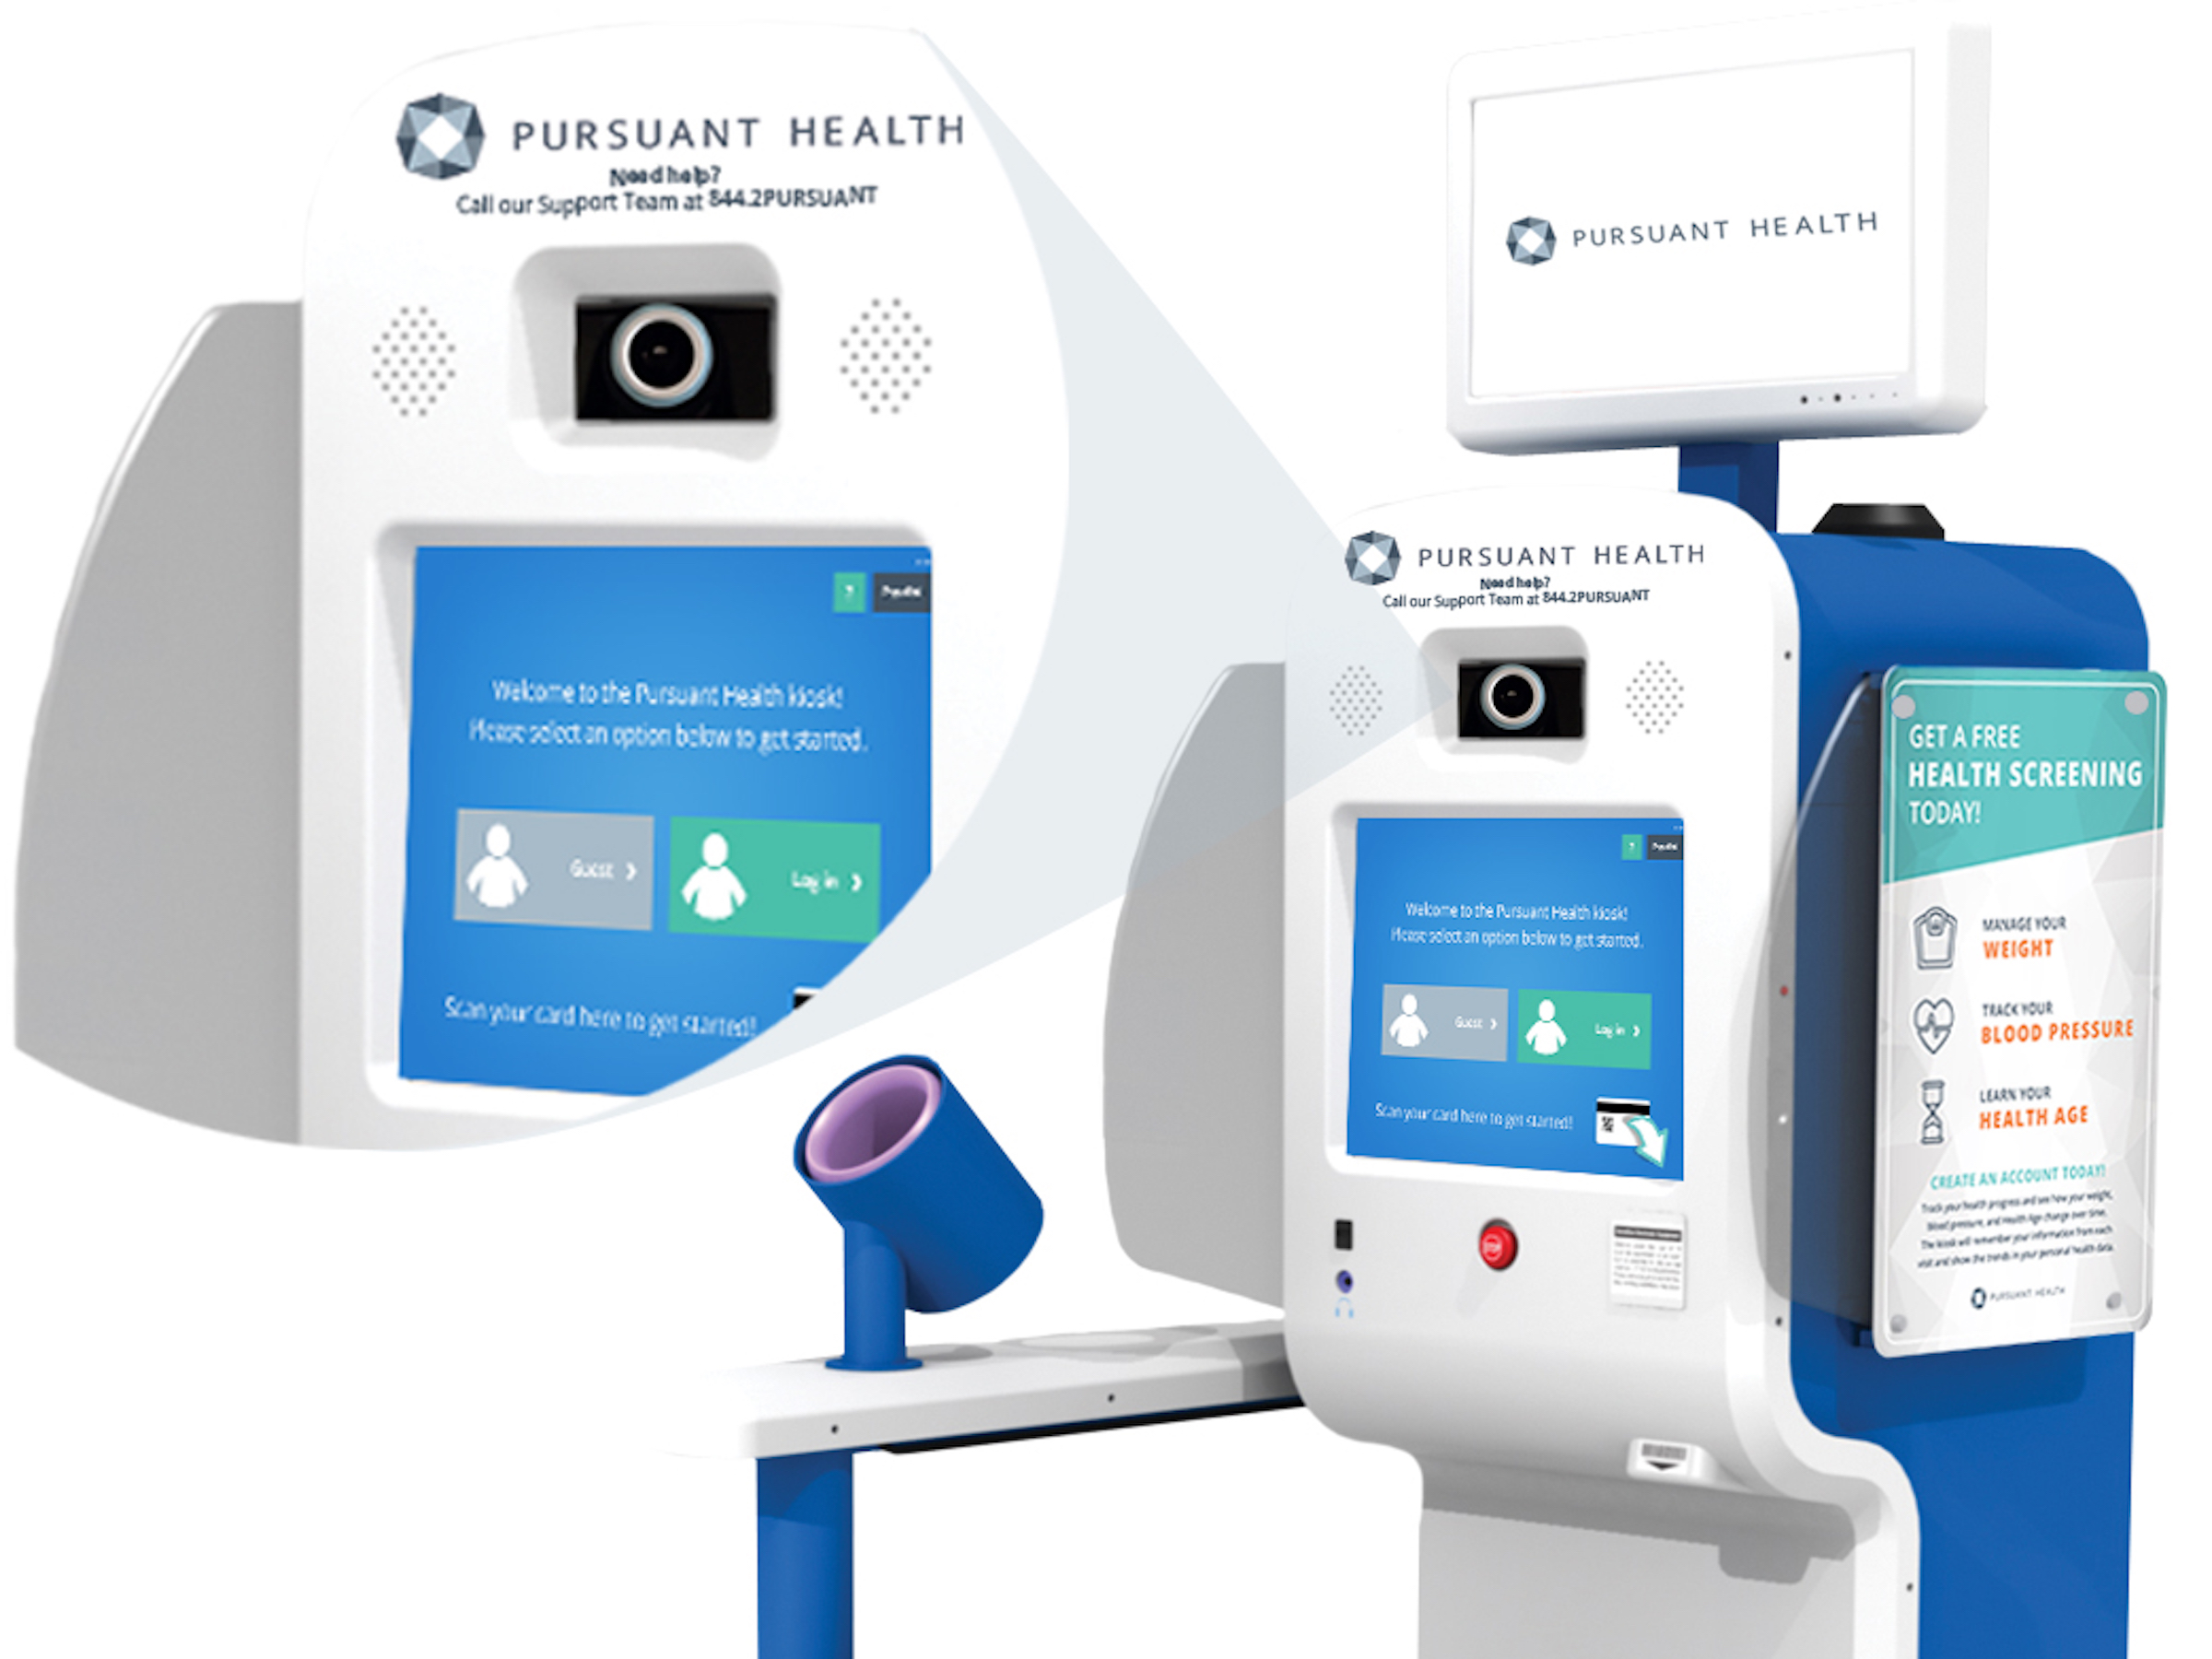 Image Depicting Diabetic Retinopathy Kiosk Prototype with Non-Mydriatic Fundus Camera Integration